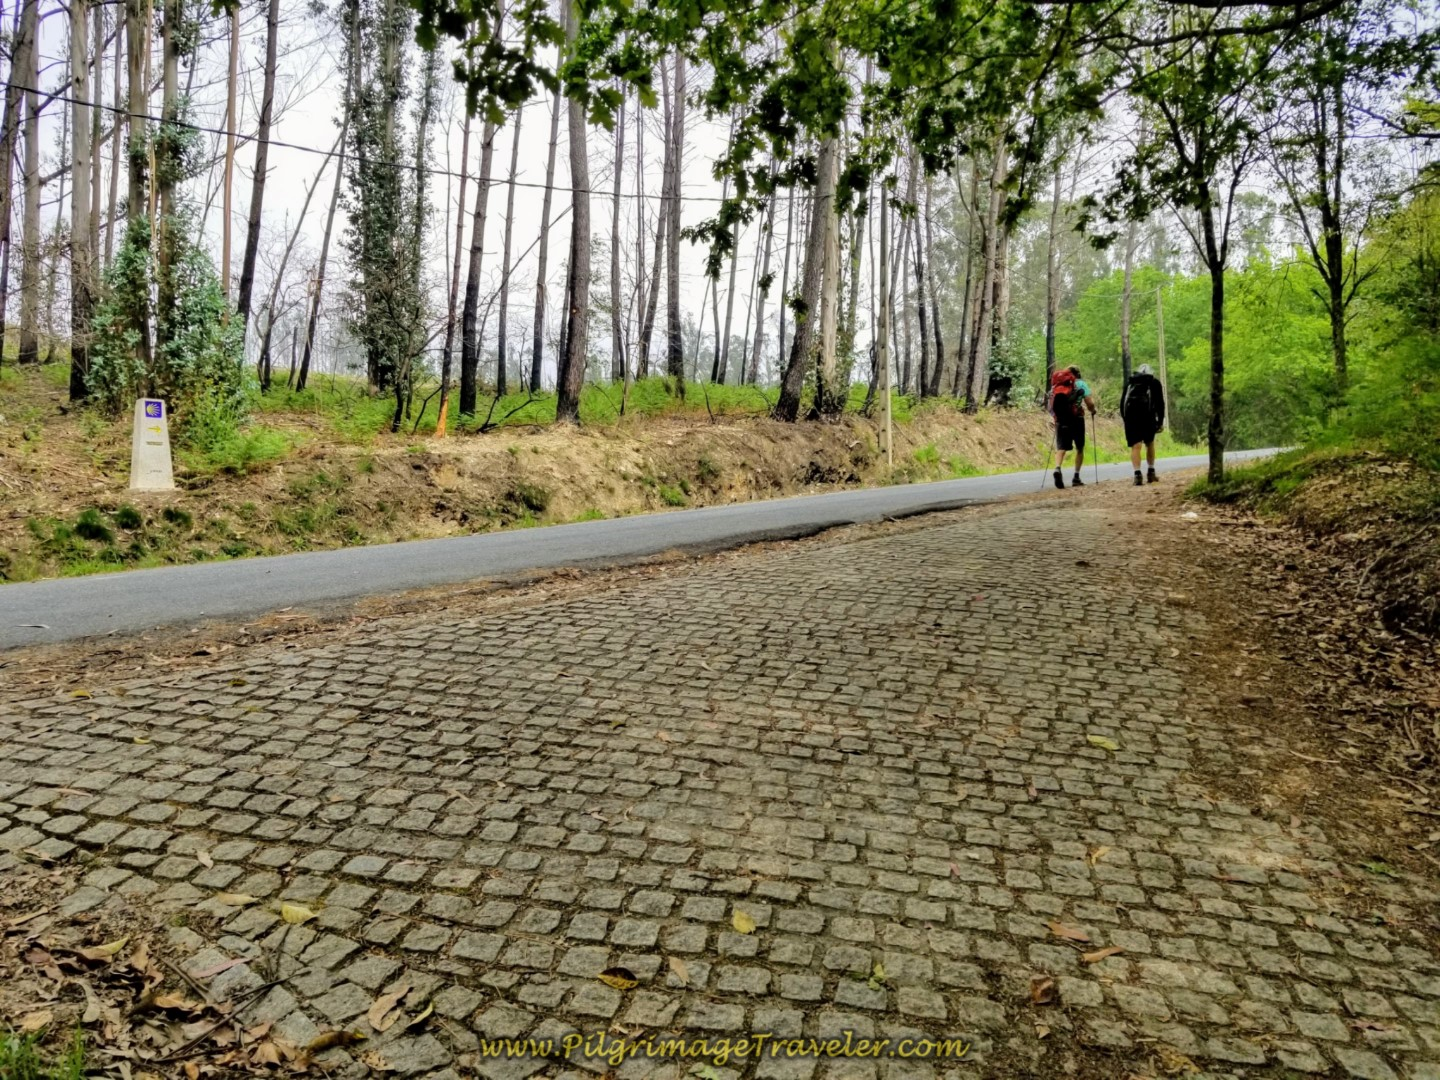 Trail Joins Secondary Road towards Carballo on day one of the Camino Finisterre